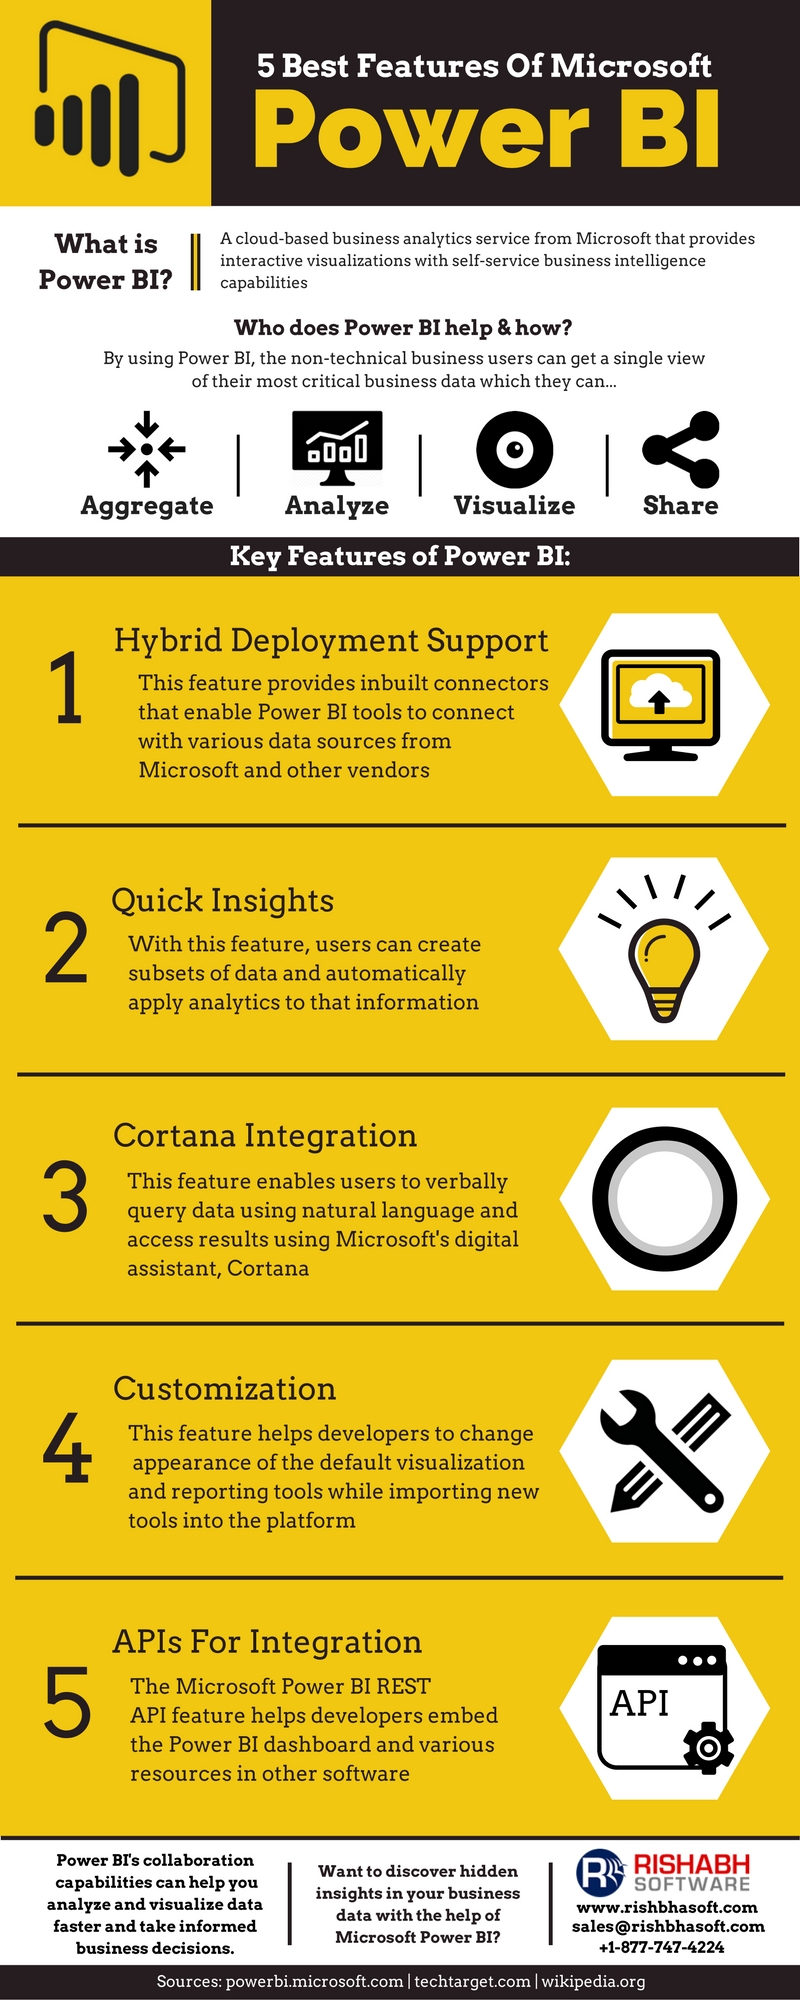 Features of Microsoft Power BI